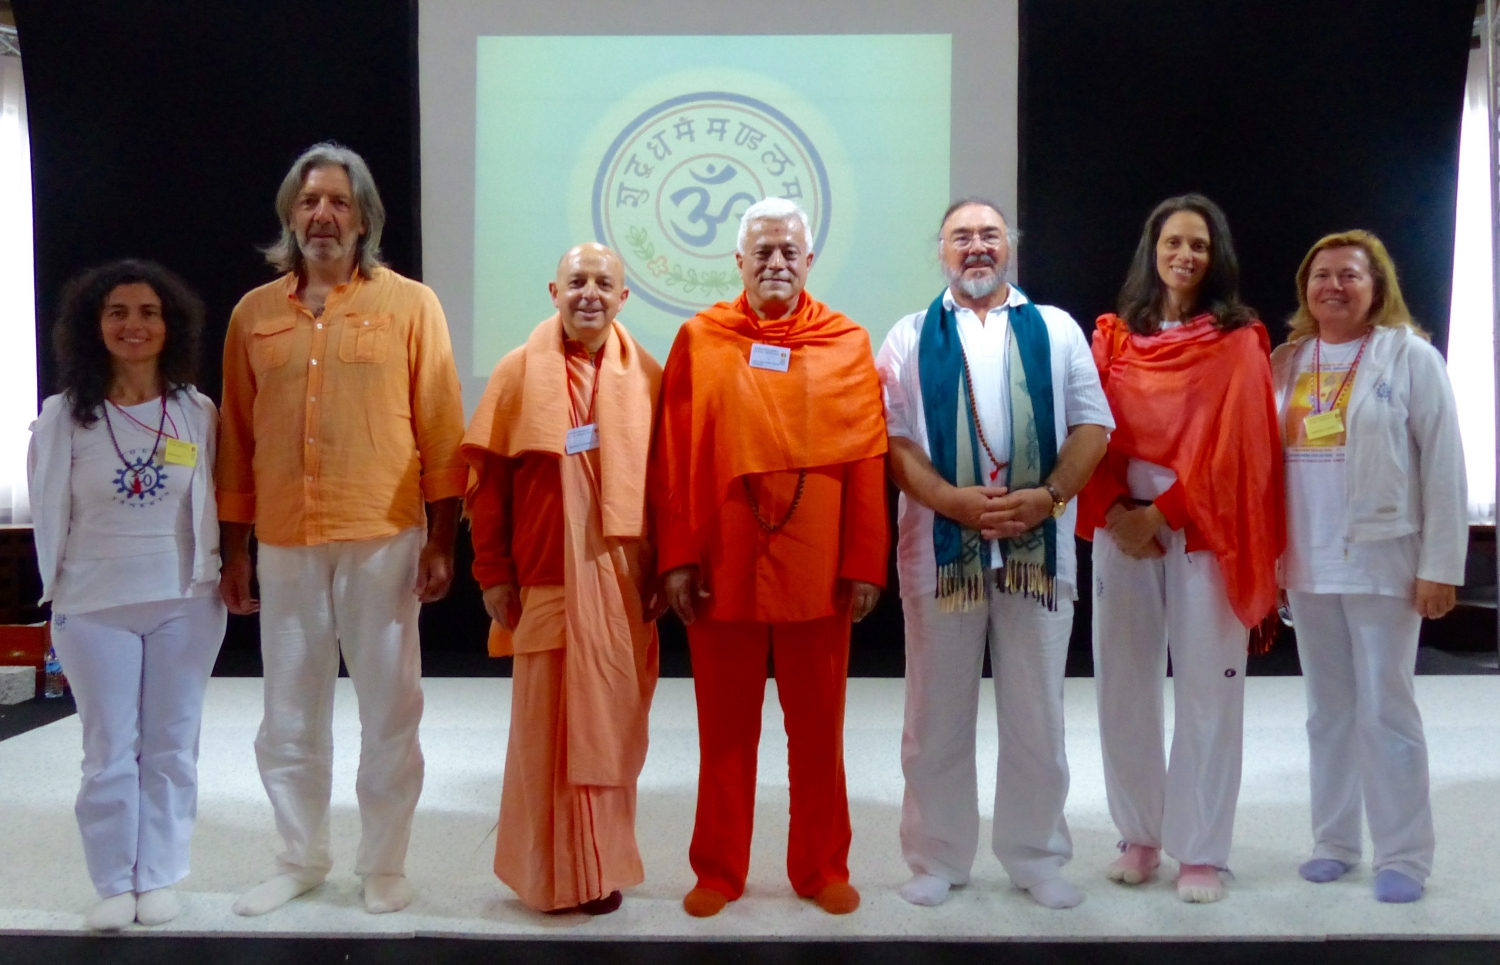 The Board of Directors of the Iberian Yoga Confederation